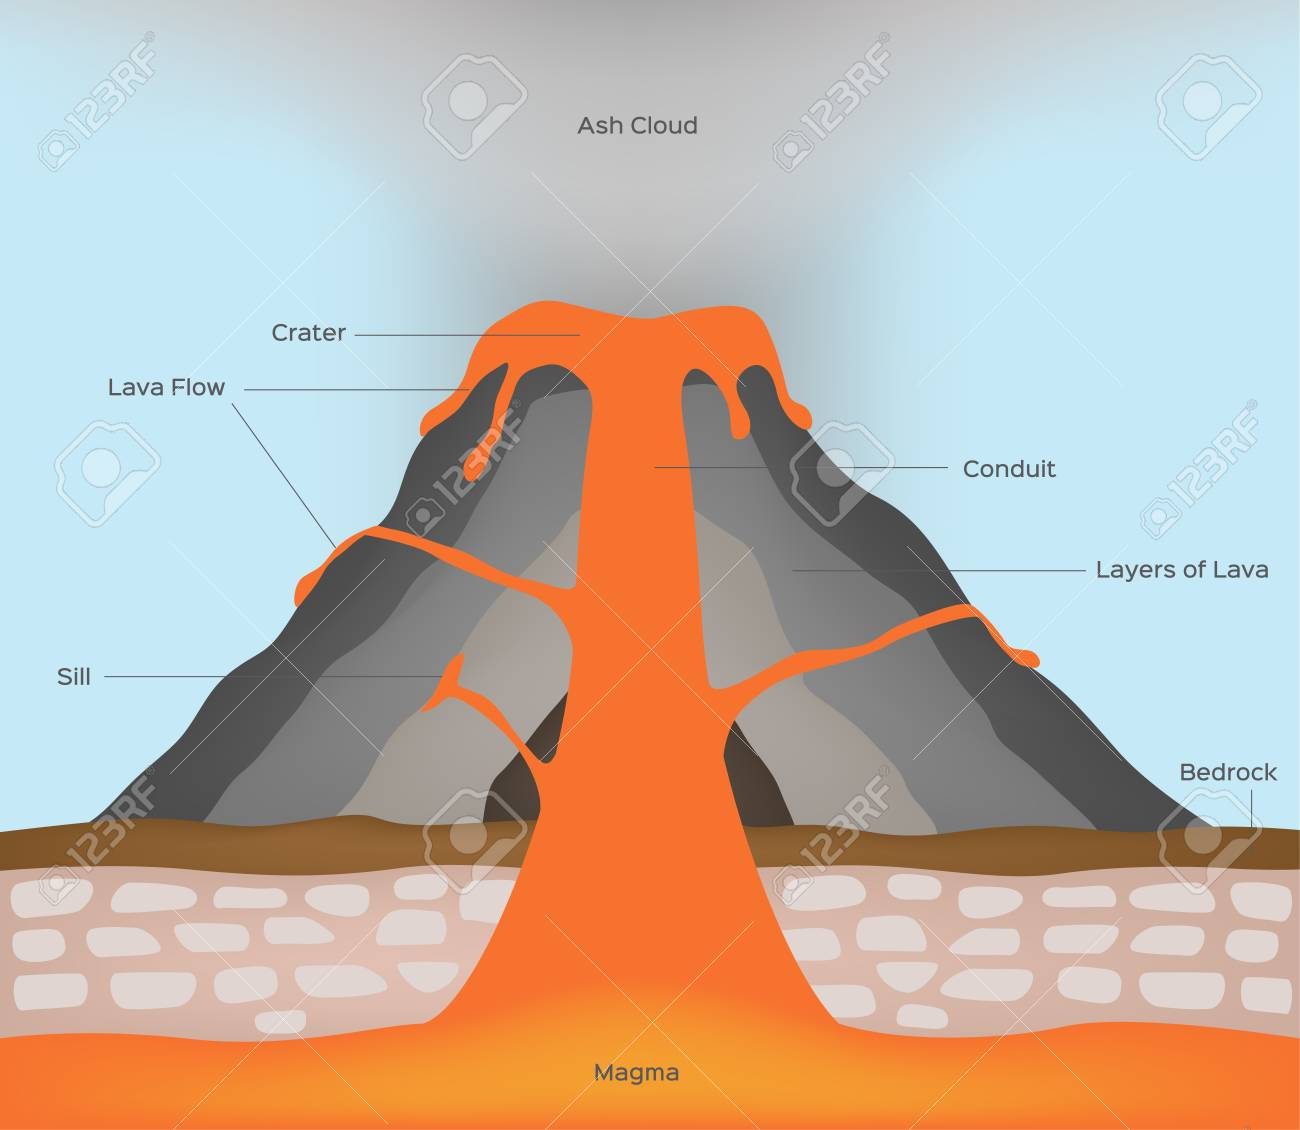 234 thermal diagram stock vector illustration and royalty free volcano and lava infographic vector illustration pooptronica